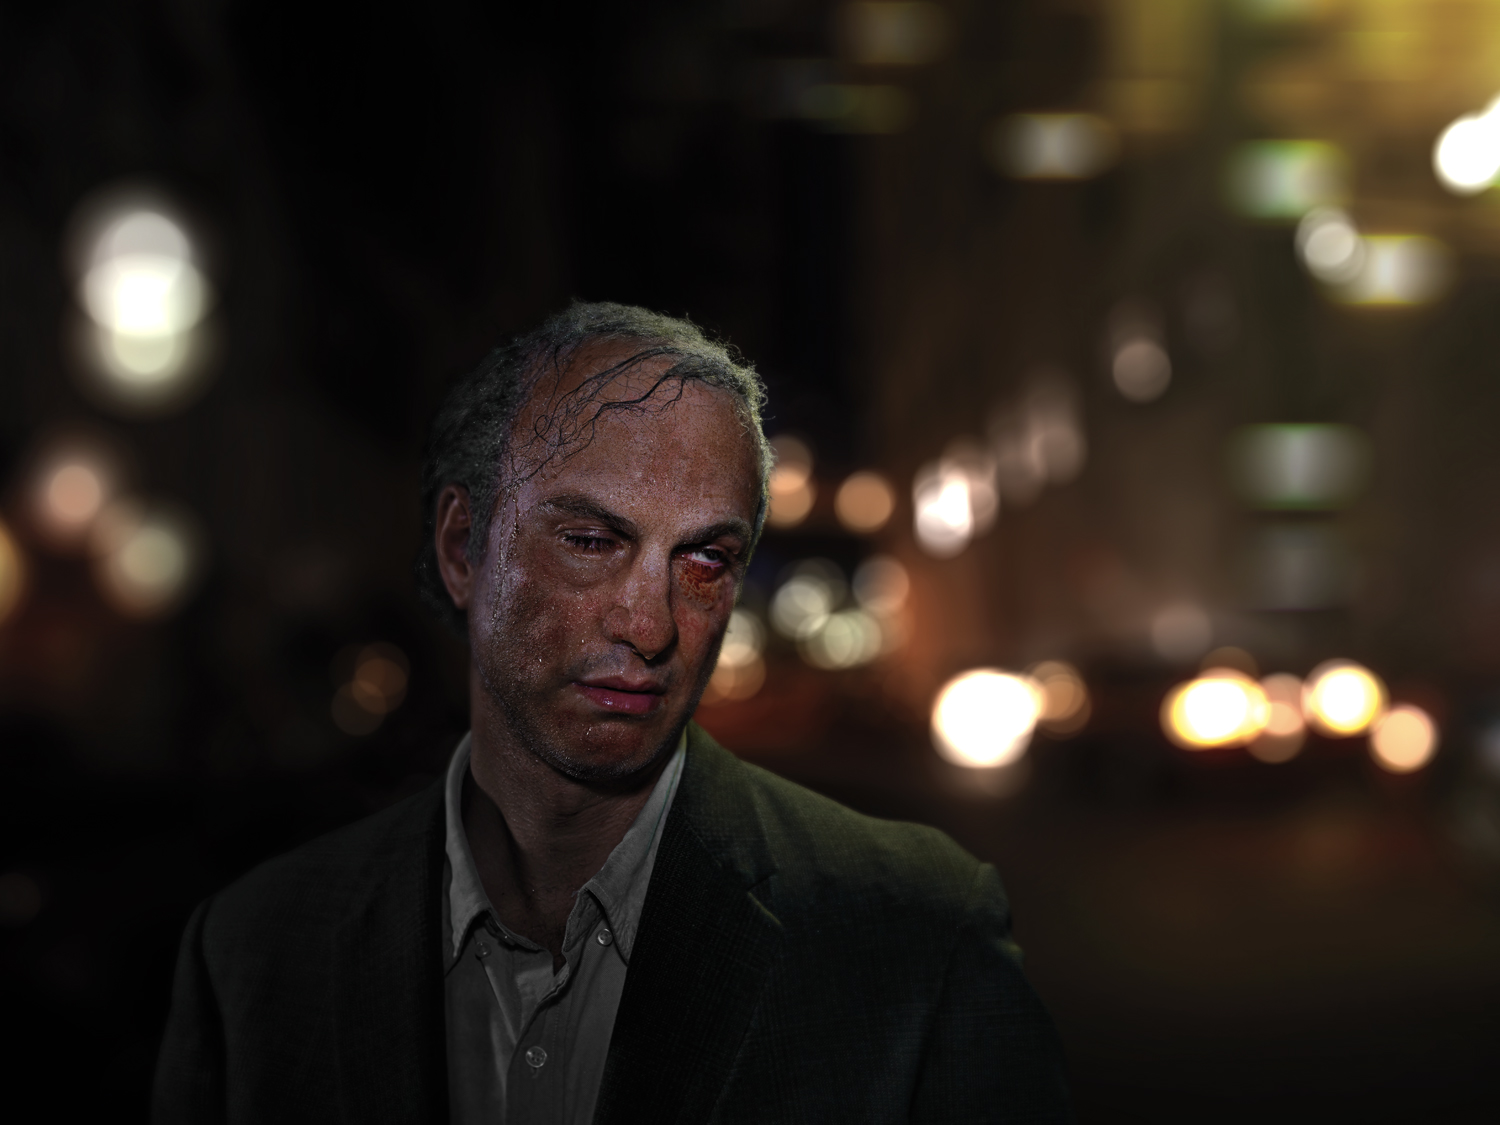 """From """"Maybe"""" which became the documentary   """"The Many Sad Fates of Mr. Toledano."""" Dead Drunk Phil. © Phillip Toledano"""